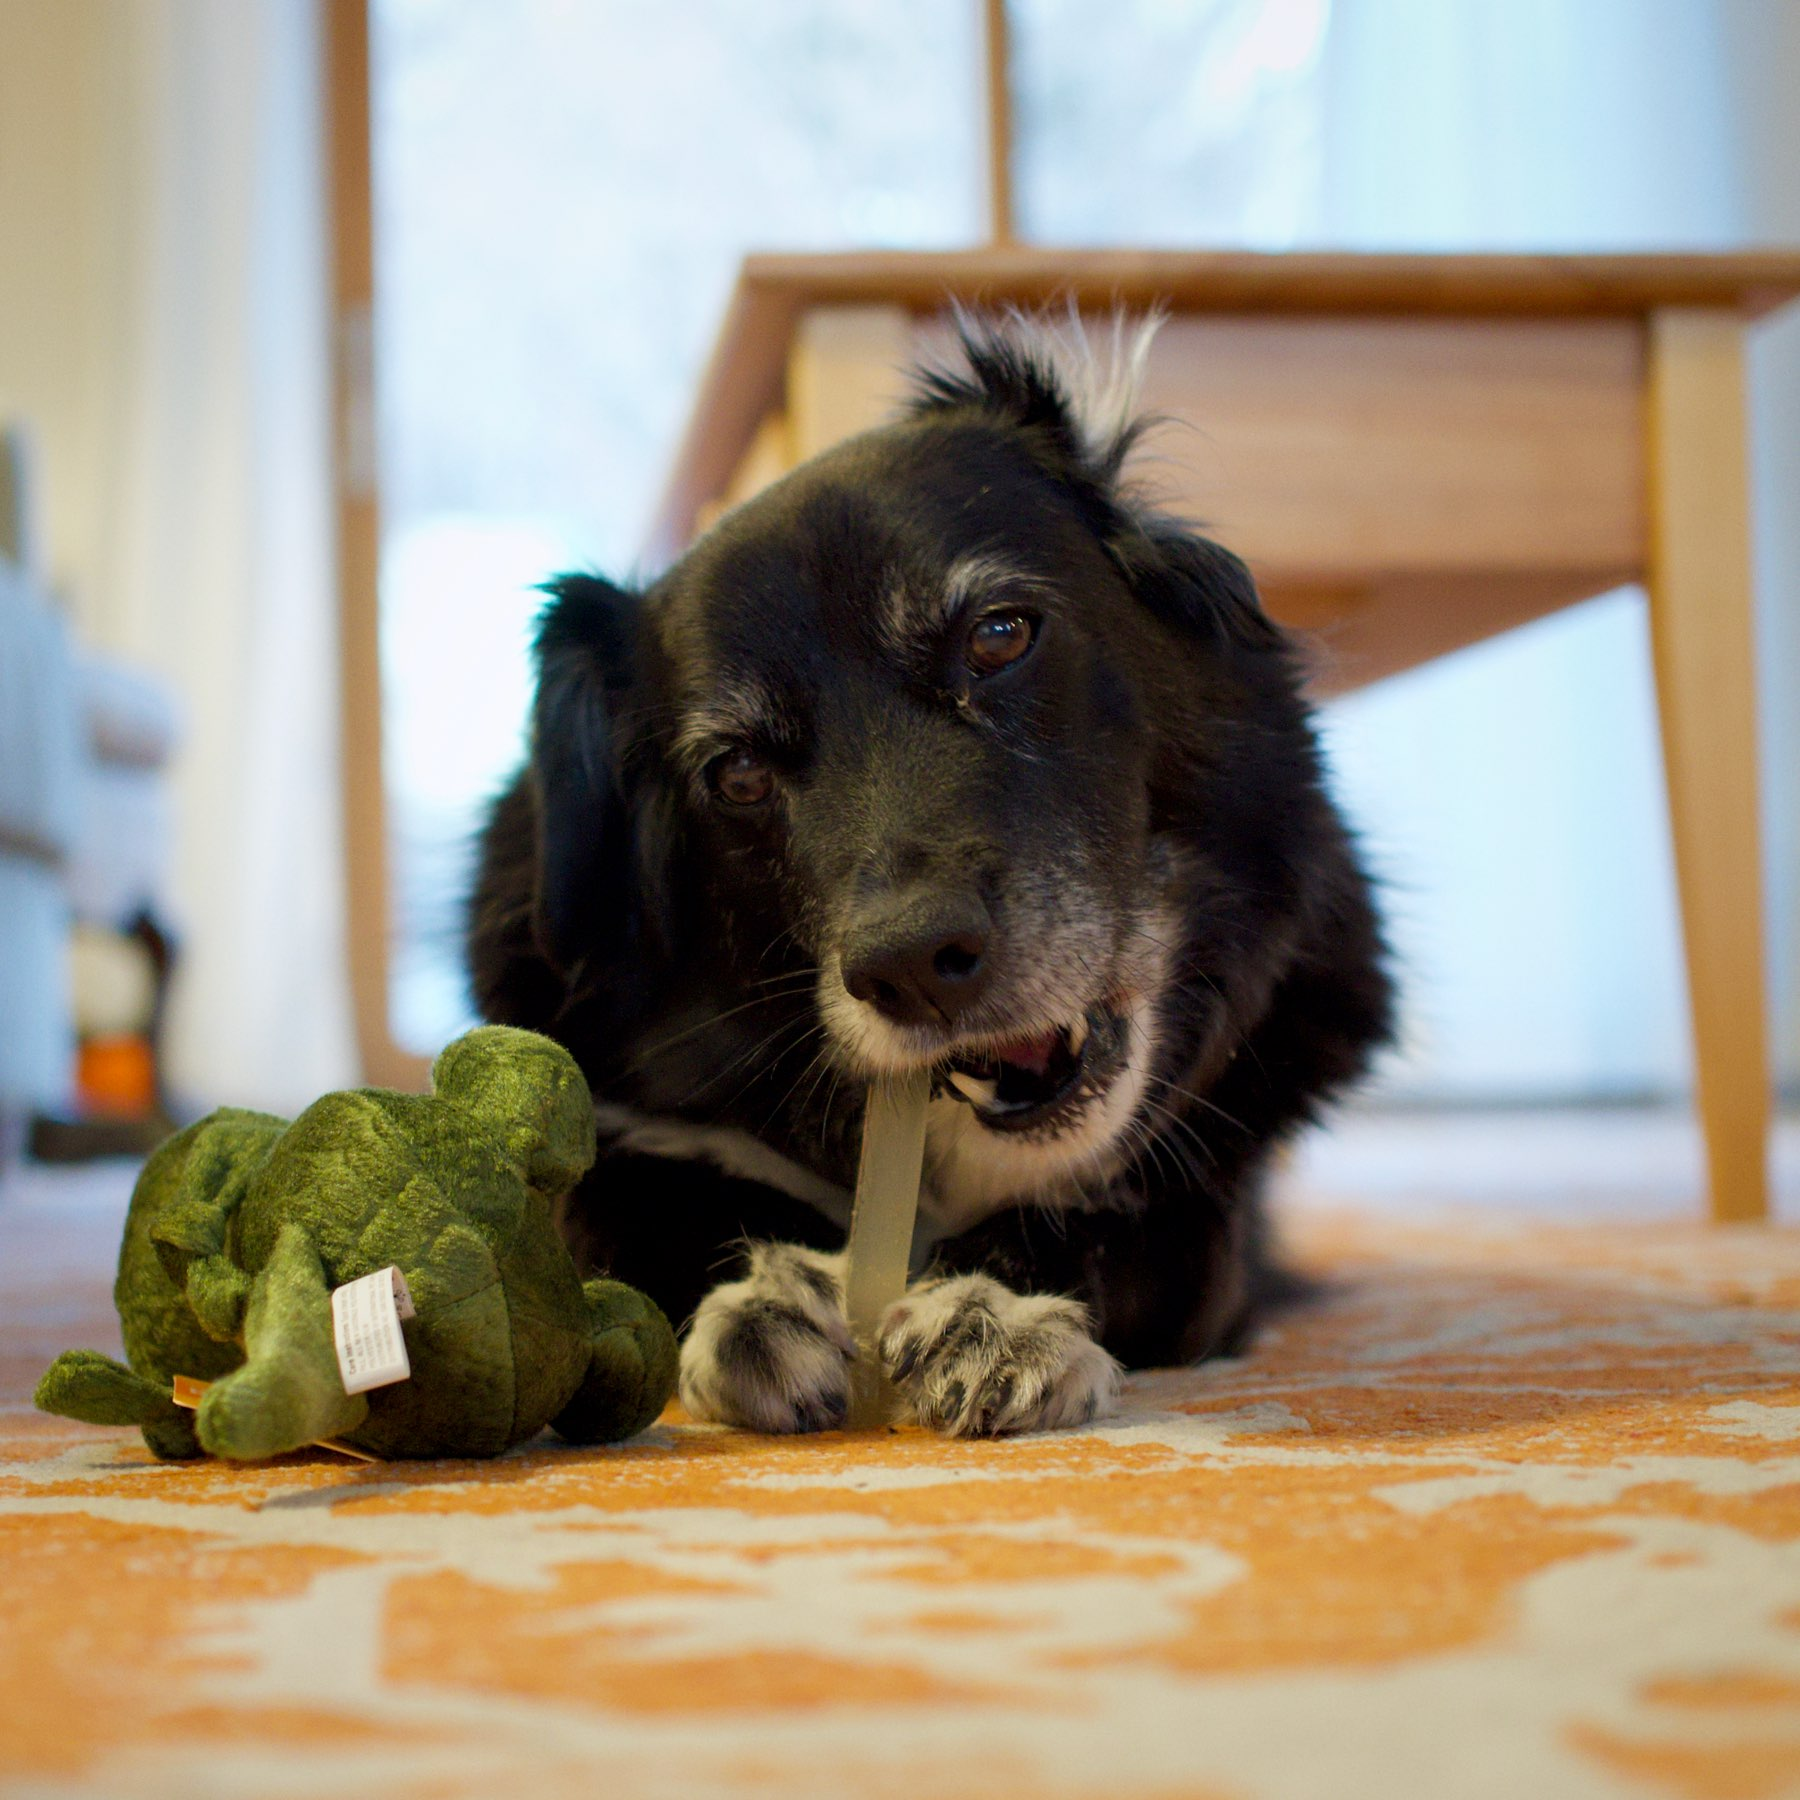 Dog chewing bone with a toy alligator.